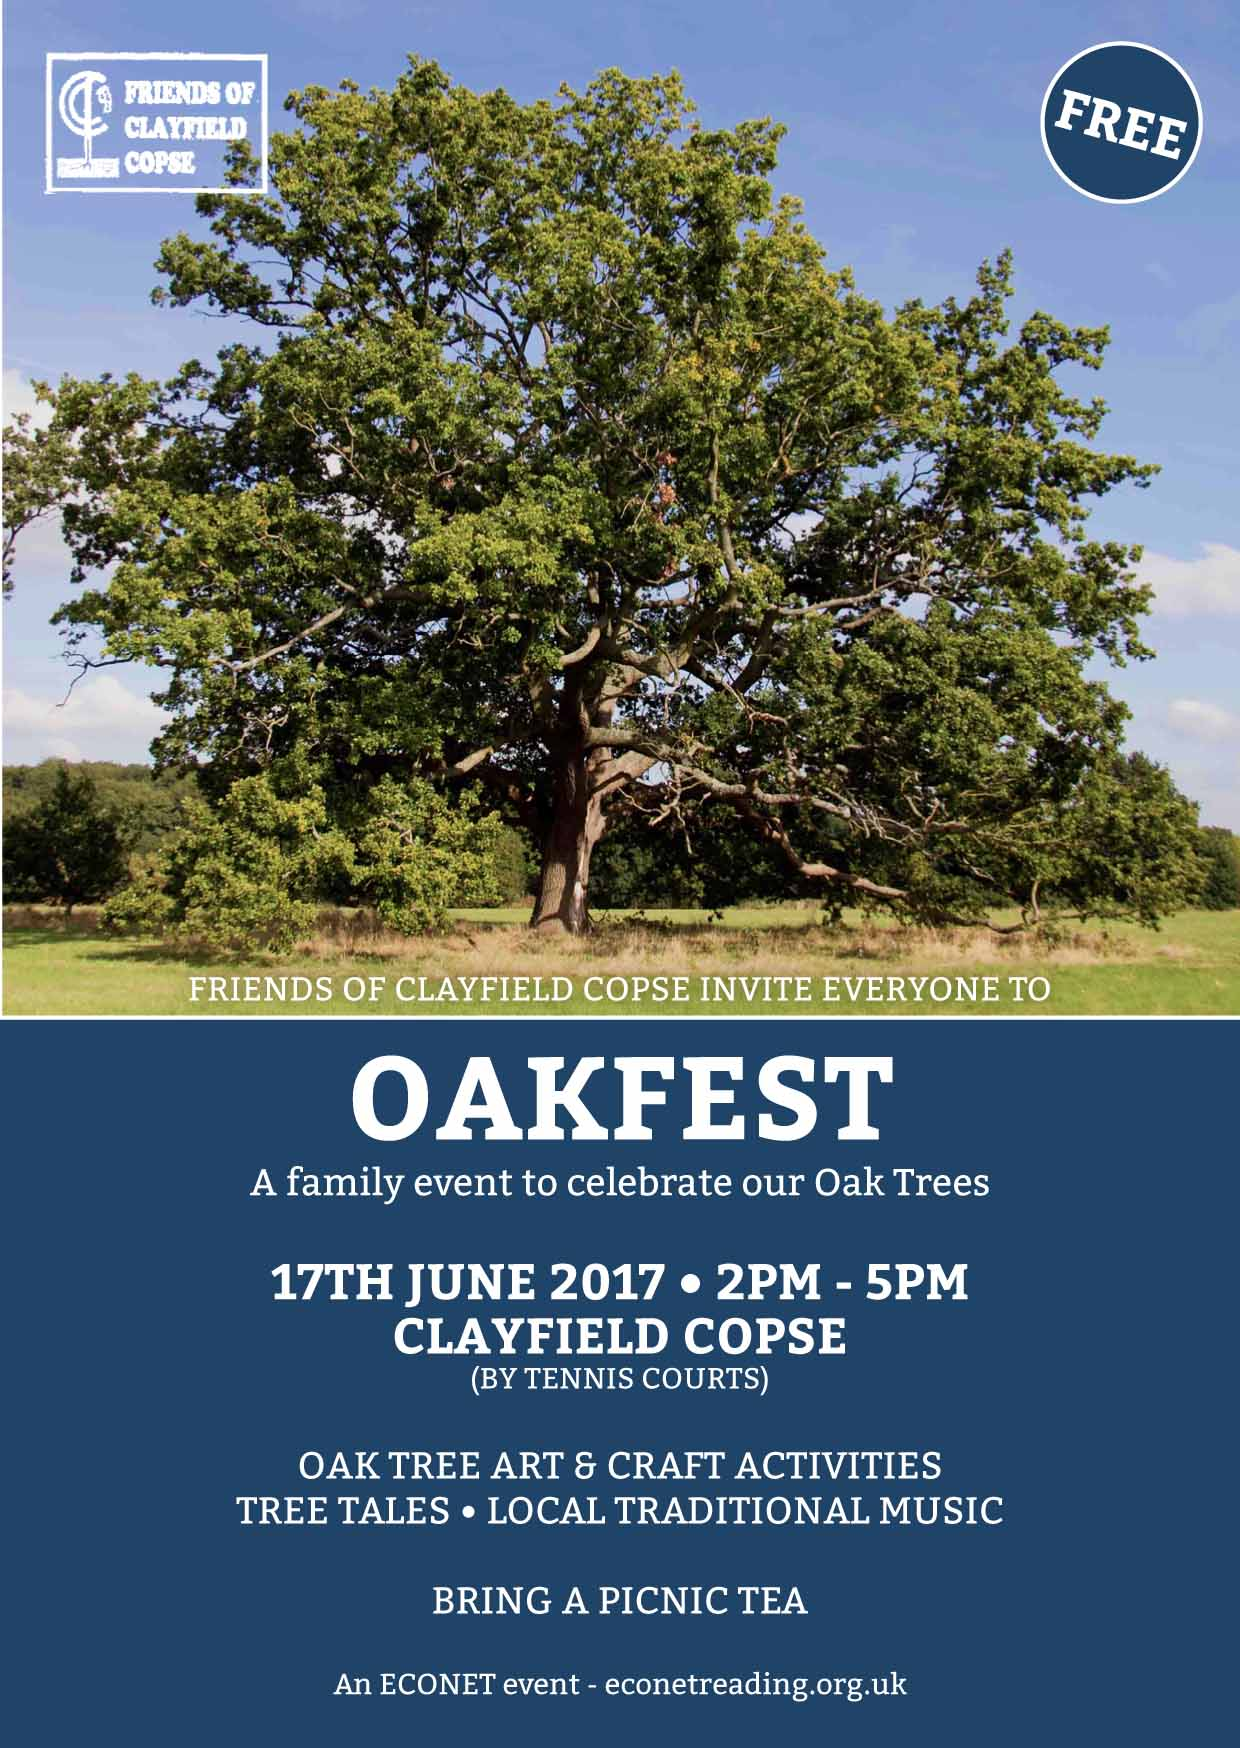 OAKFEST, A CELEBRATION OF OAK TREES